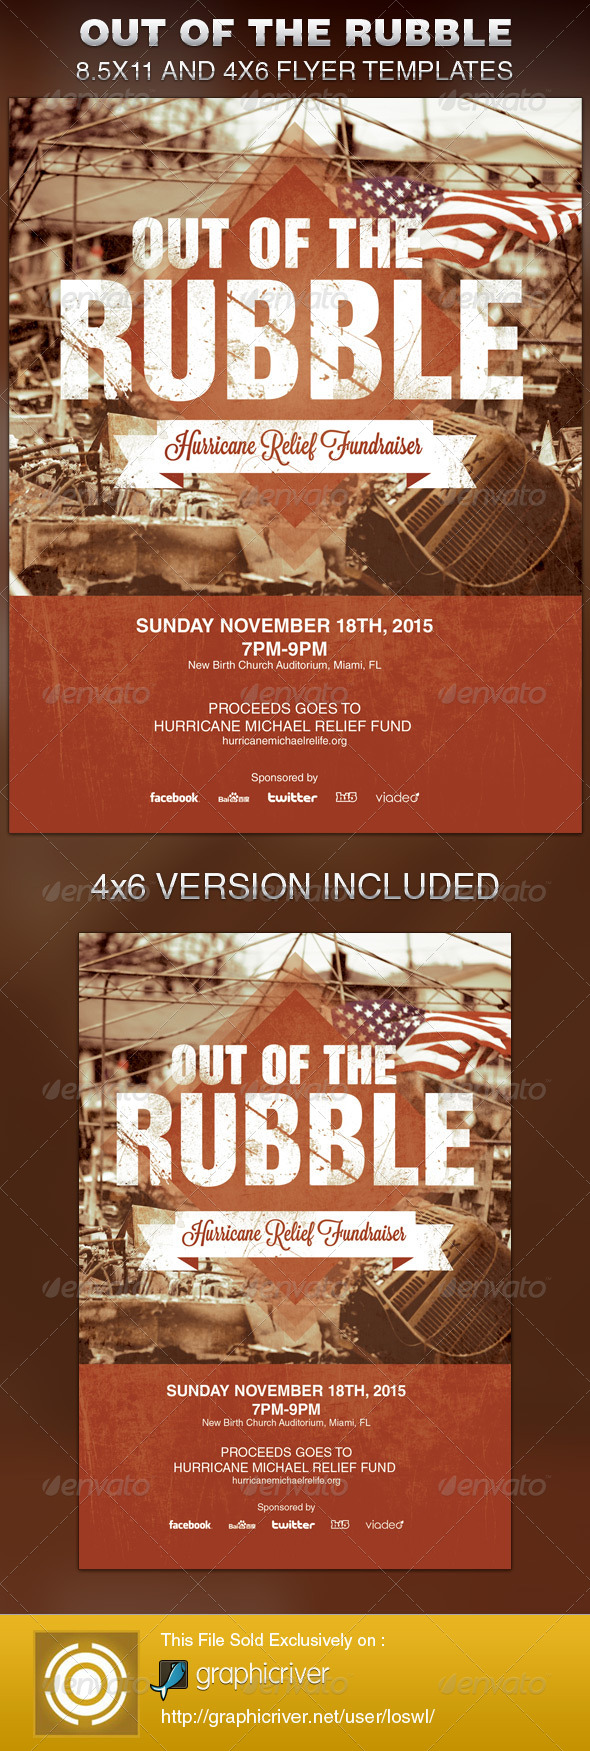 GraphicRiver Out of the Rubble Church Flyer Template 6331030